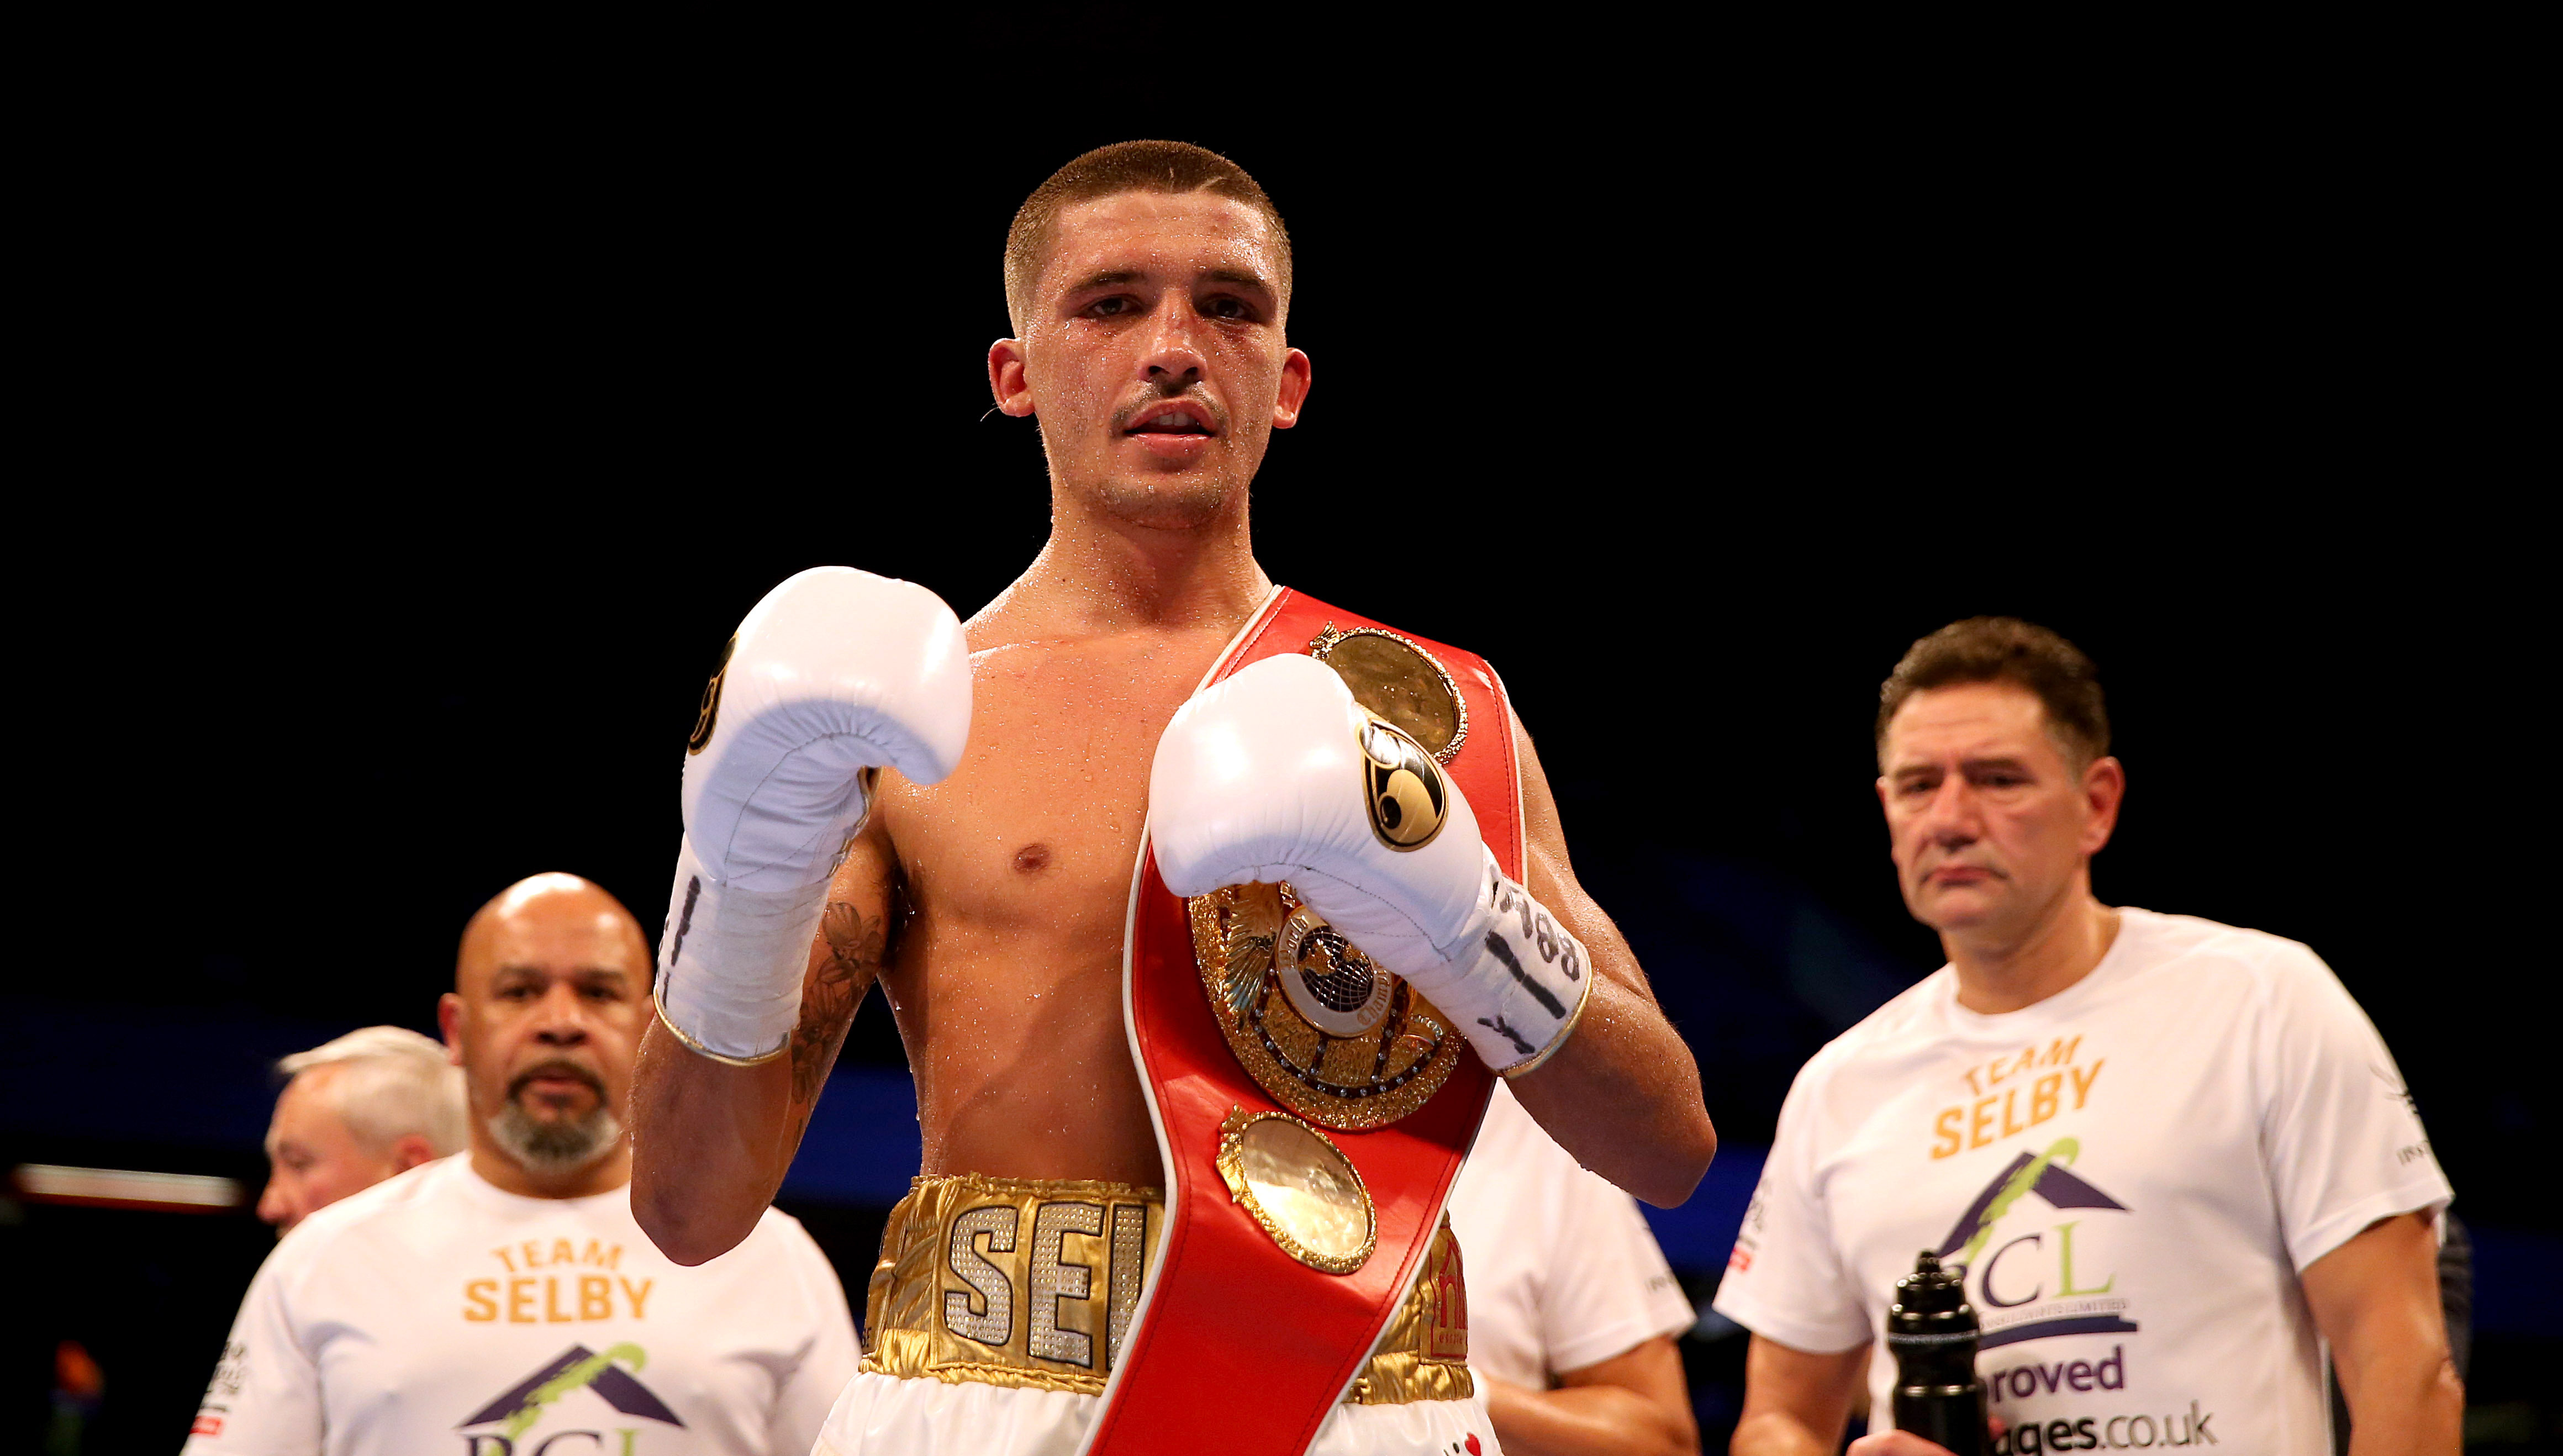 Lee Selby celebrates beating Eduardo Ramirez